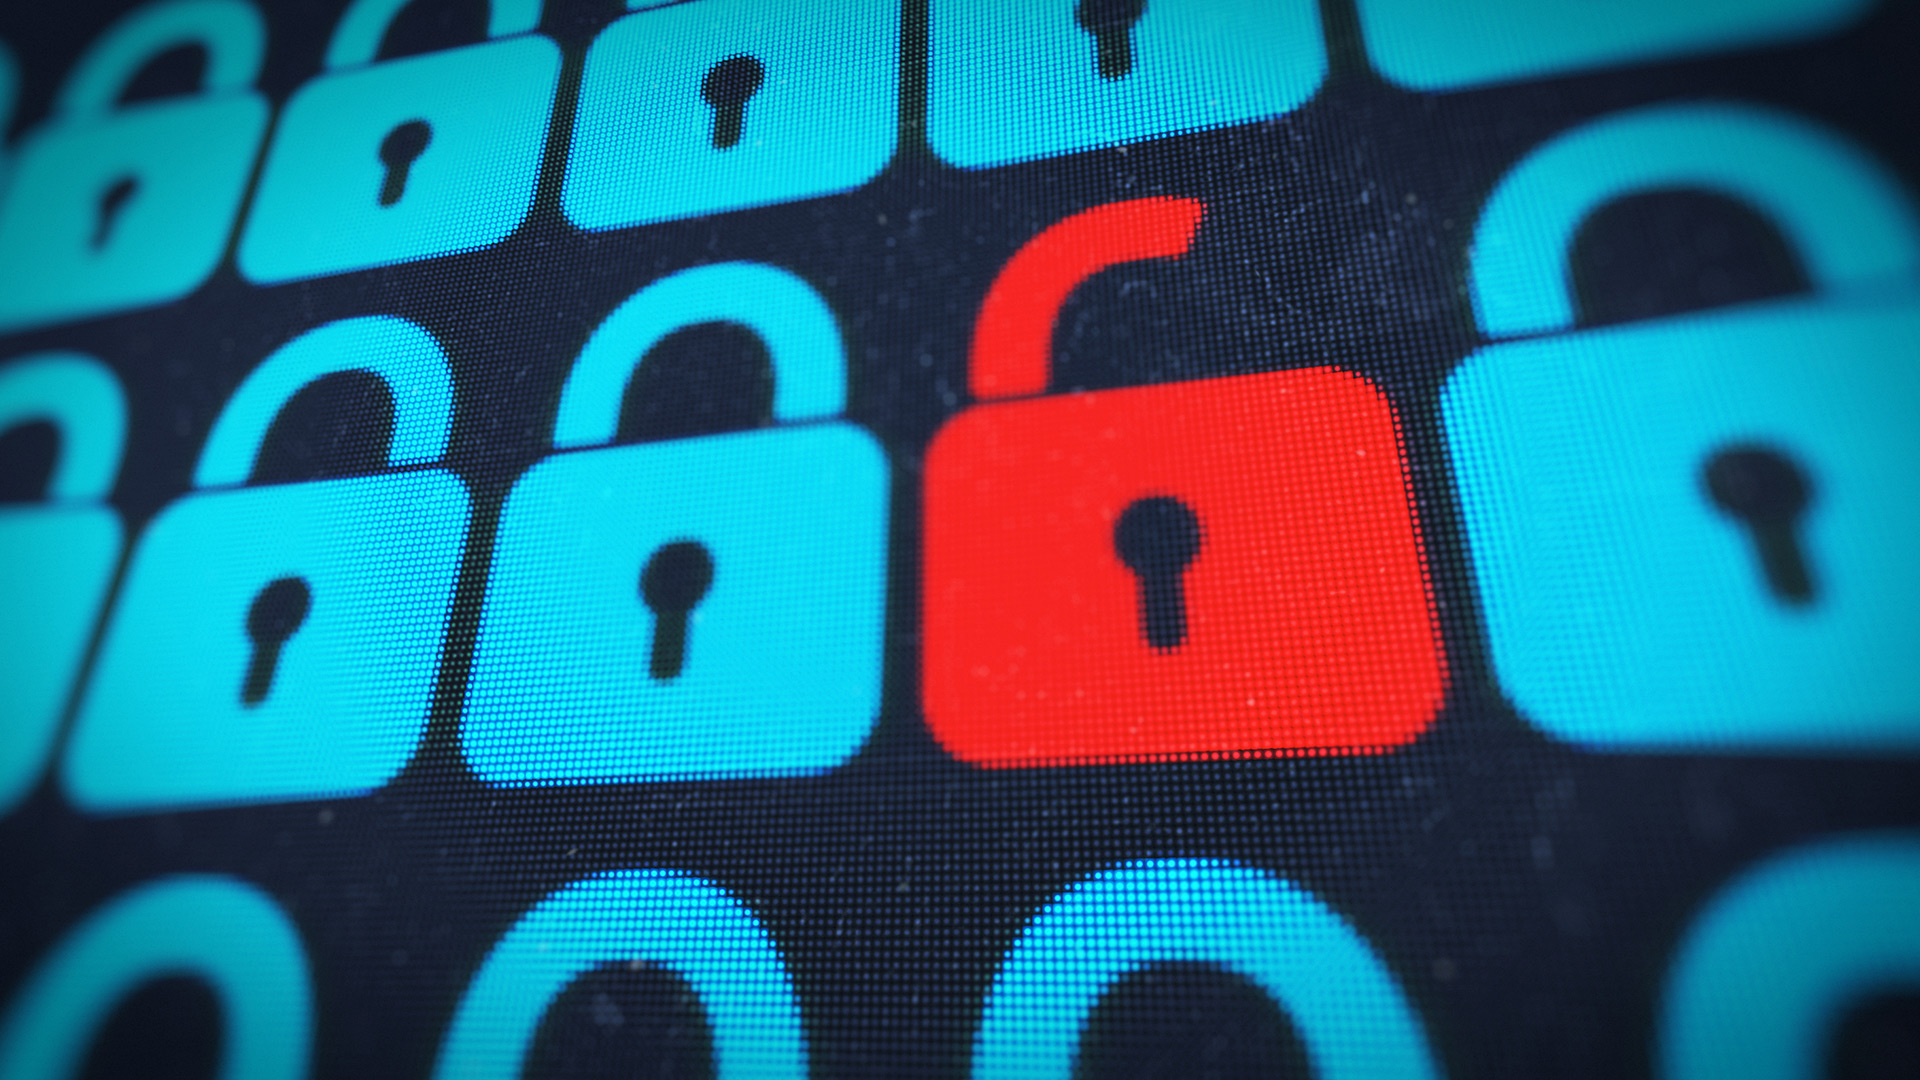 Computer screen with a row of blue lock icons, middle lock icon is red and unlocked